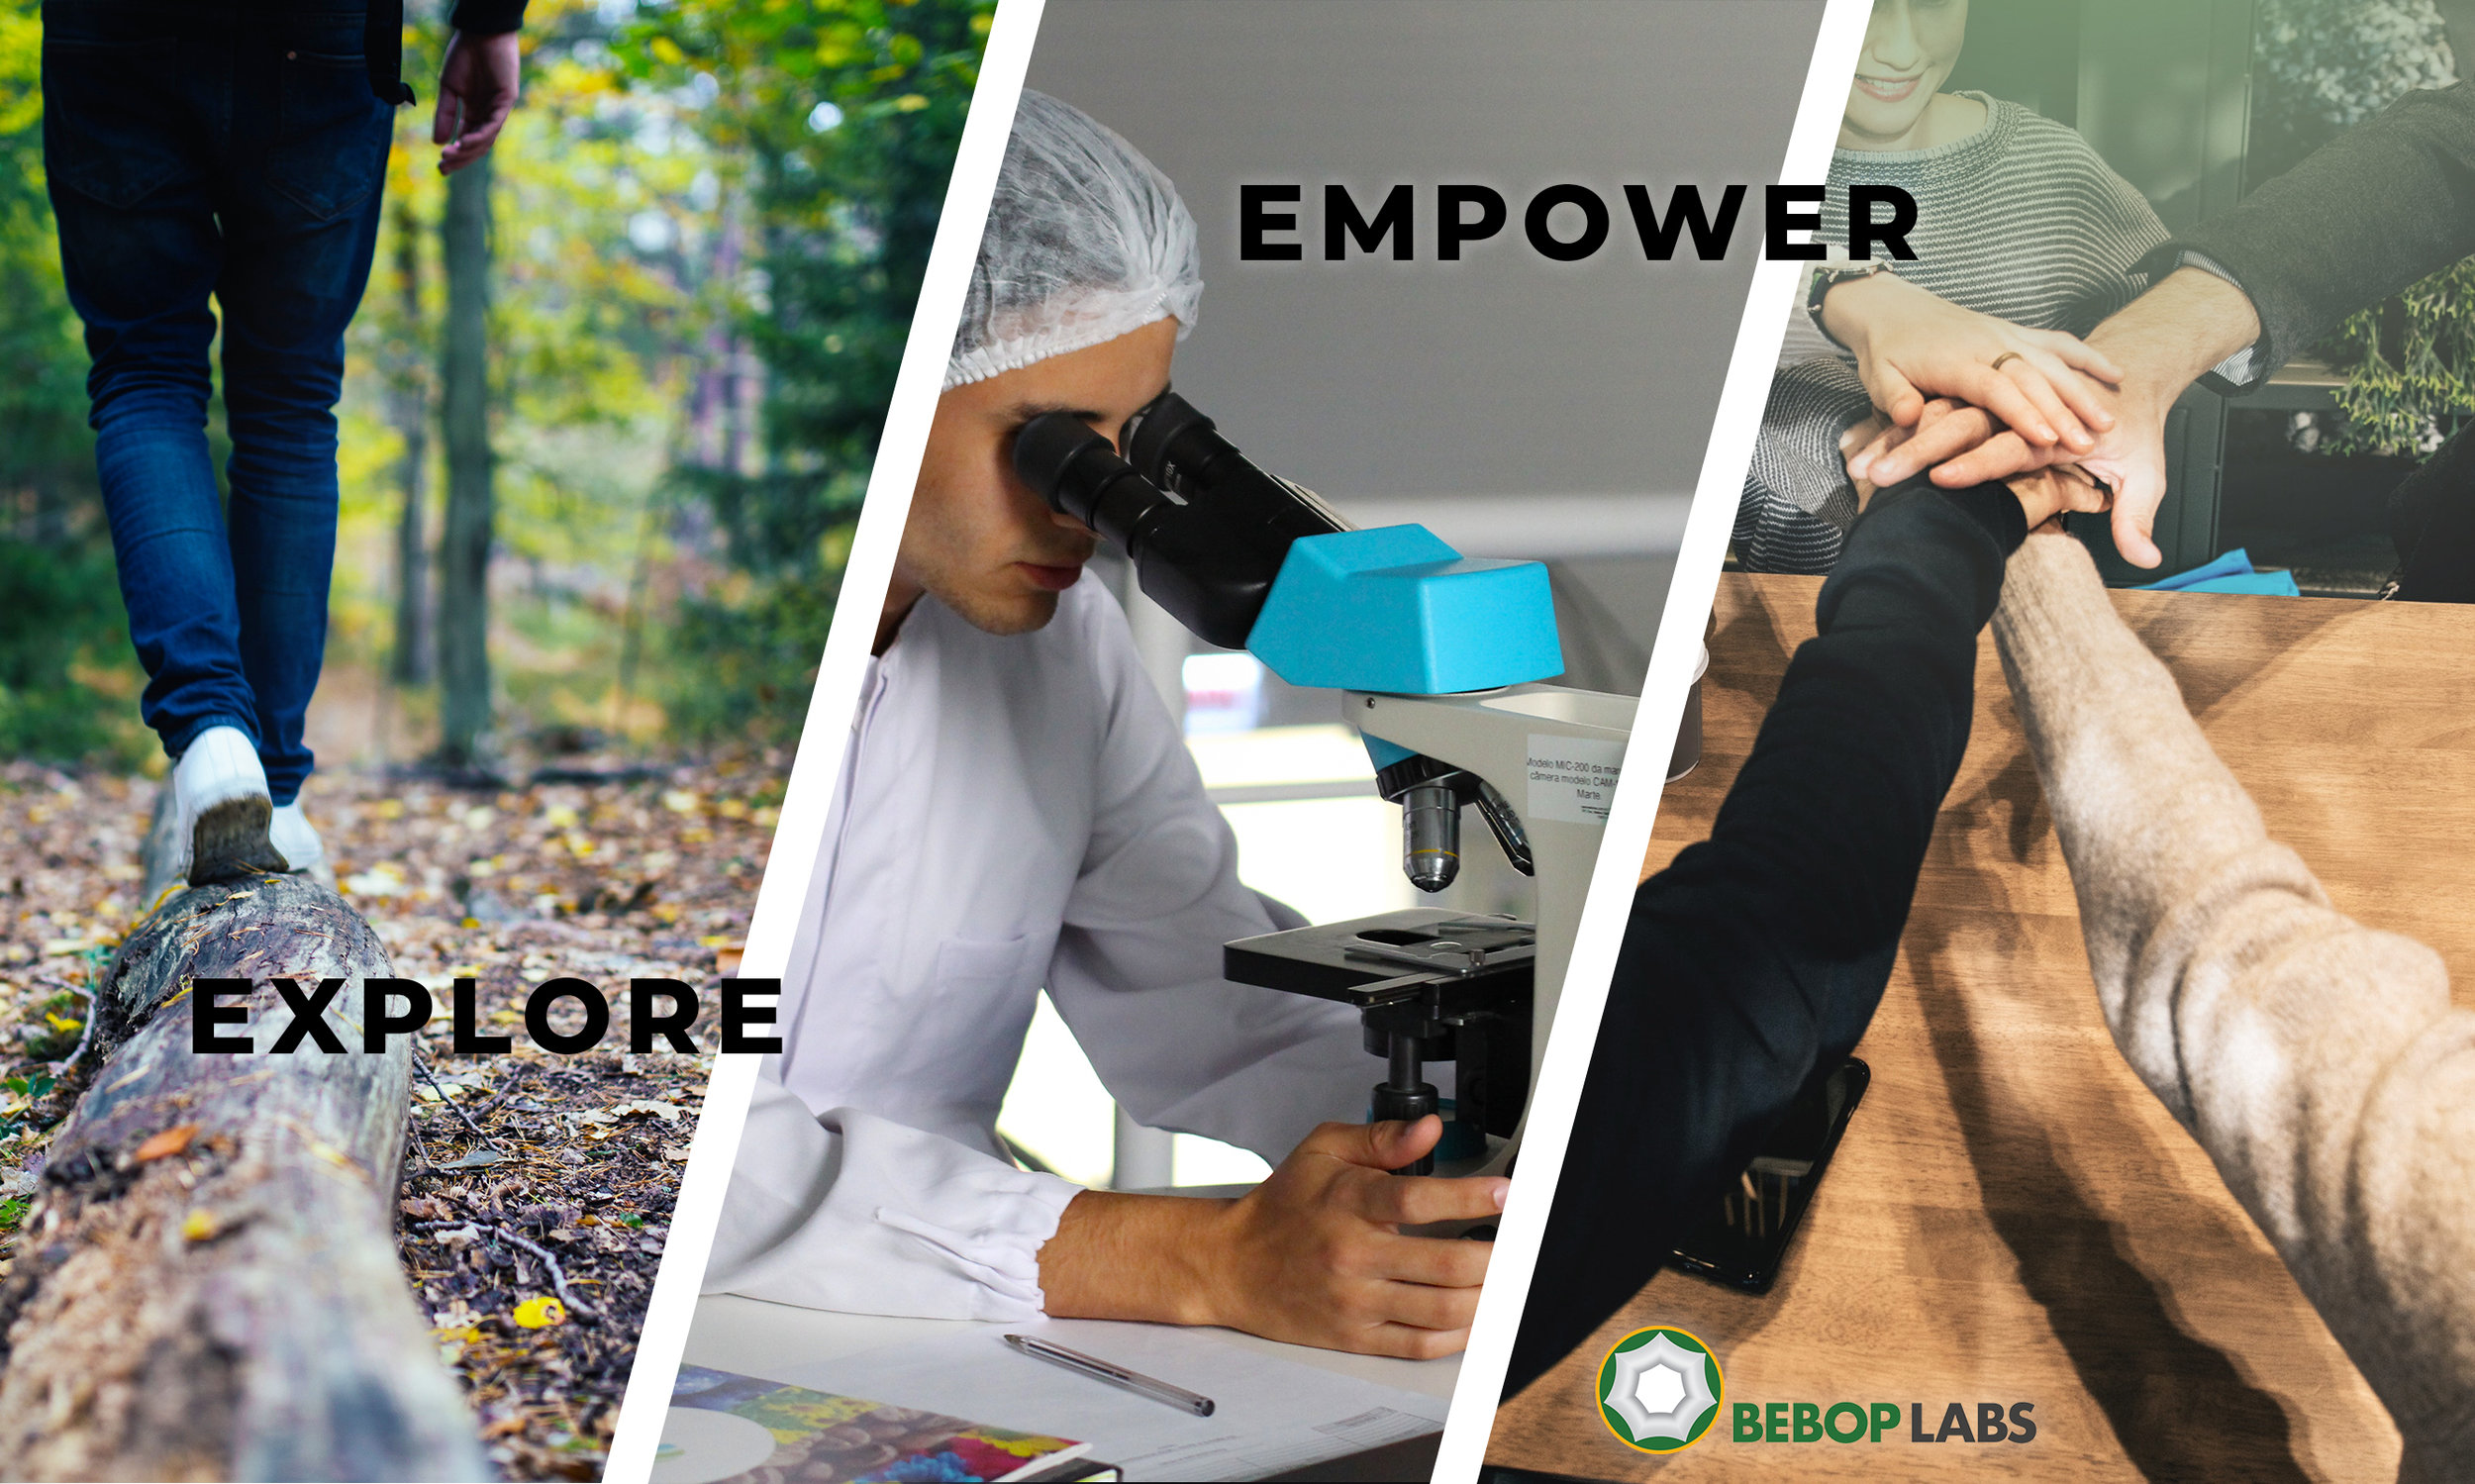 Bebop Labs Explore Empower Image